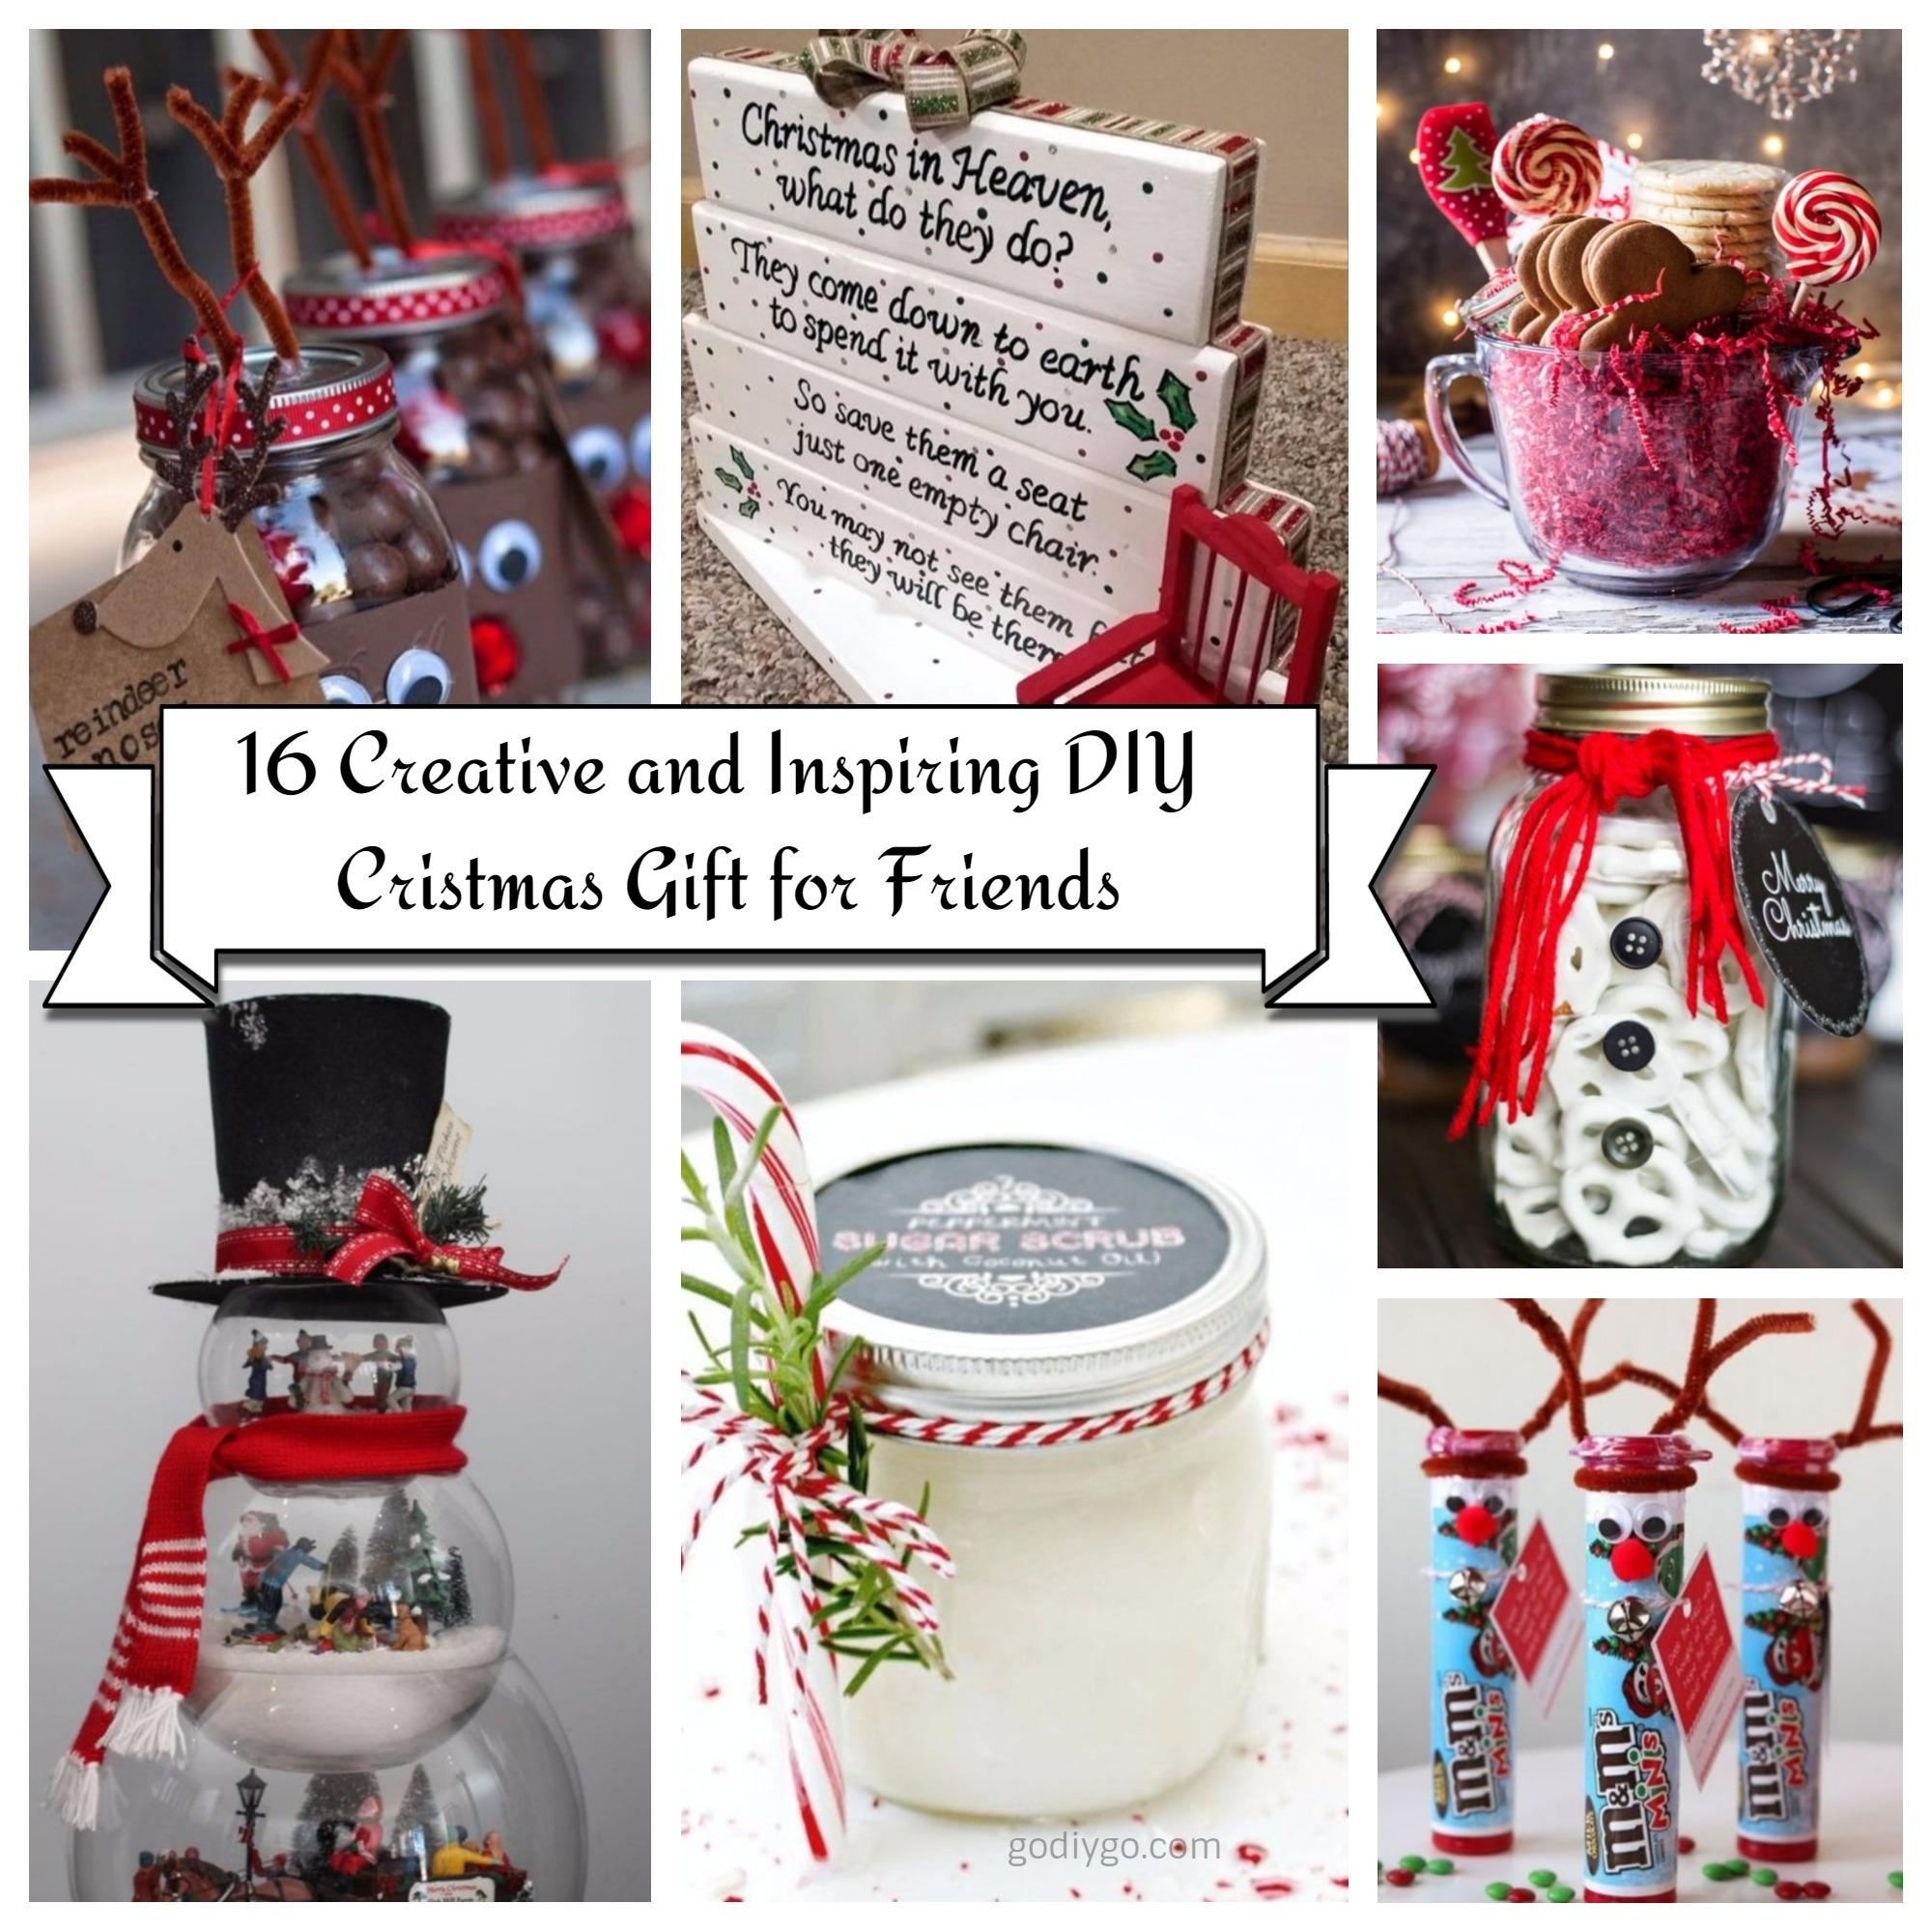 16 creative and inspiring diy christmas gift for friends for Creative homemade christmas gifts for friends